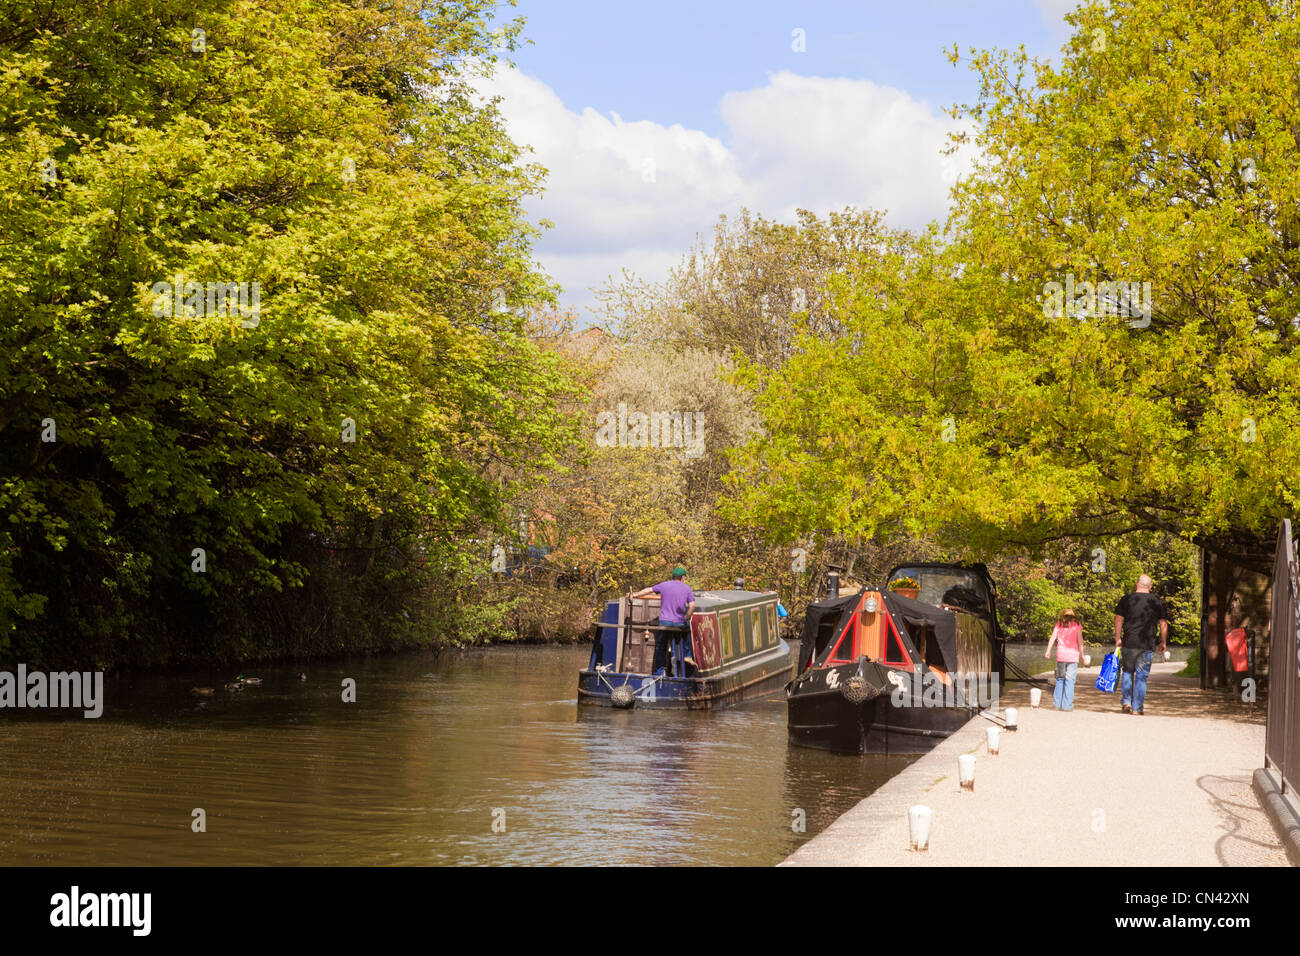 Narrowboats on the River Severn at Worcester, England, in spring. - Stock Image